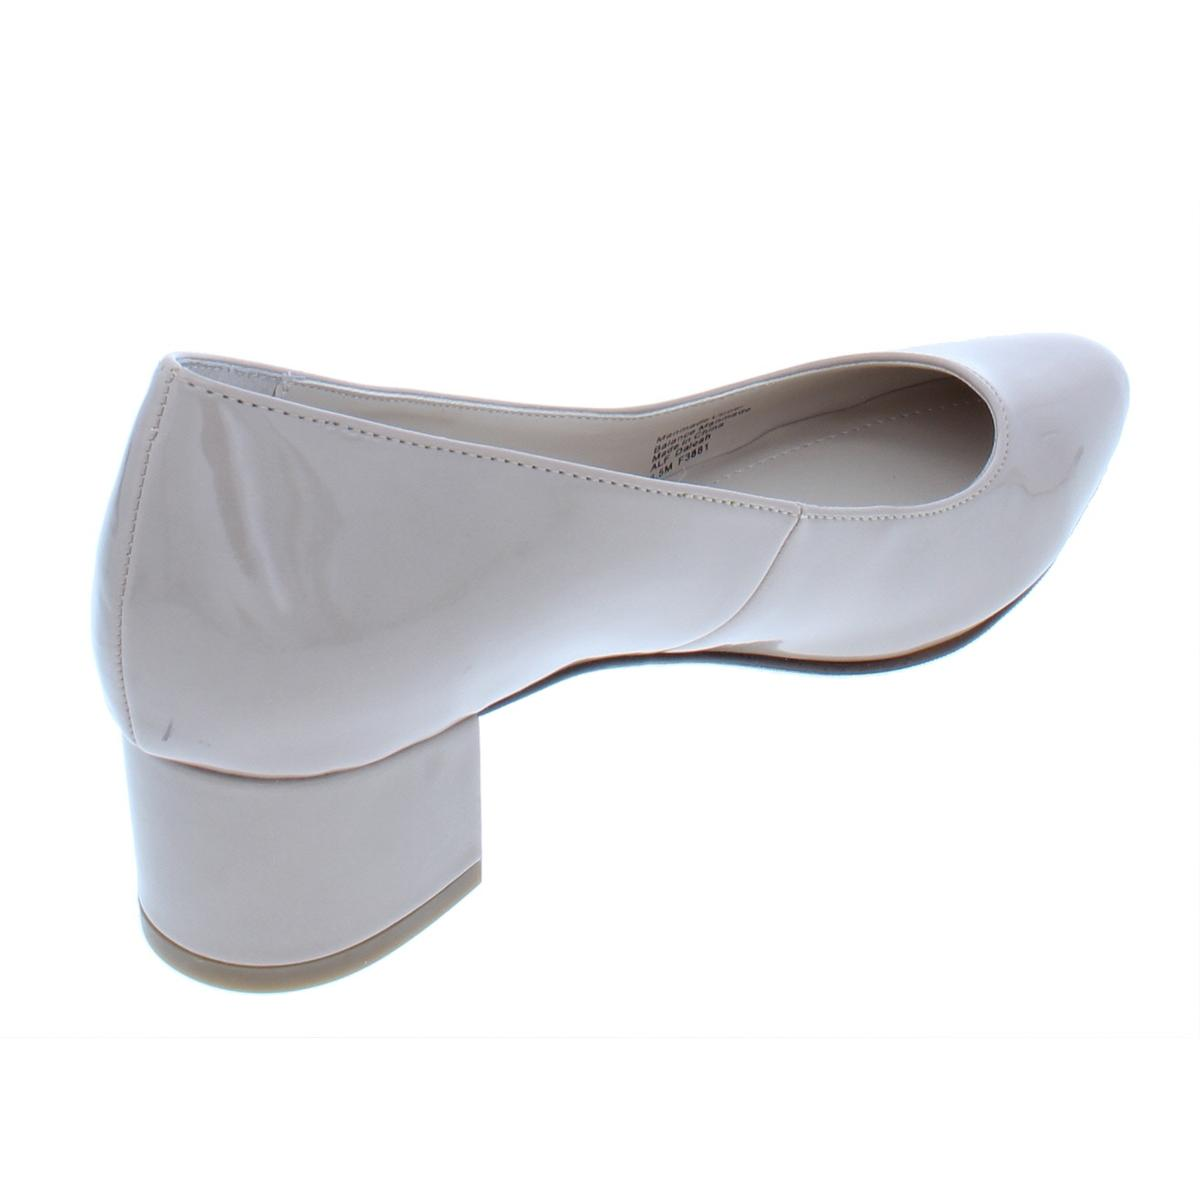 Alfani-Womens-Daleah-Padded-Insole-Block-Heel-Almond-Toe-Pumps-Shoes-BHFO-4725 thumbnail 8